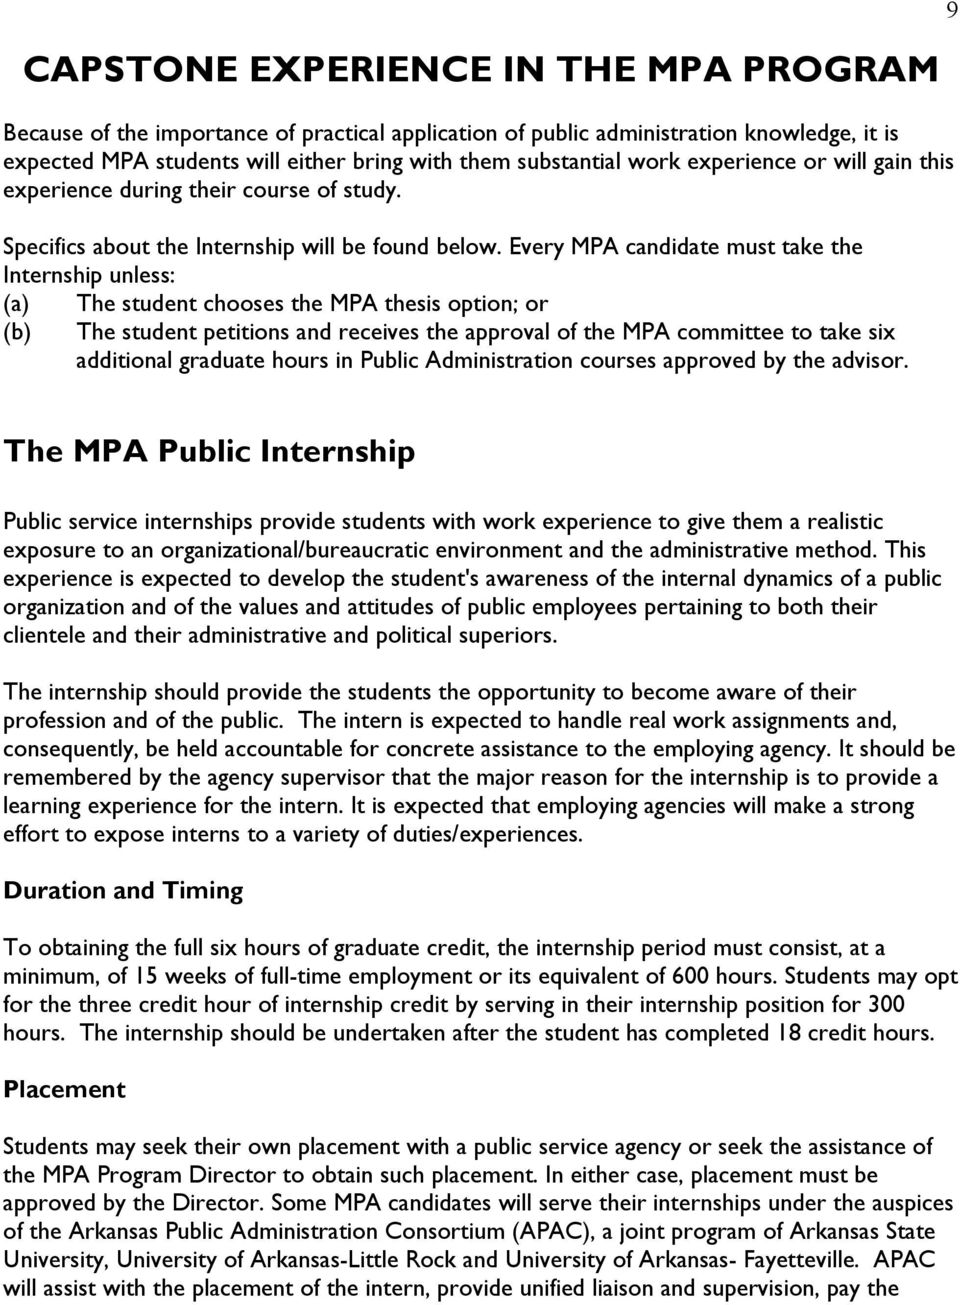 Every MPA candidate must take the Internship unless: (a) The student chooses the MPA thesis option; or (b) The student petitions and receives the approval of the MPA committee to take six additional